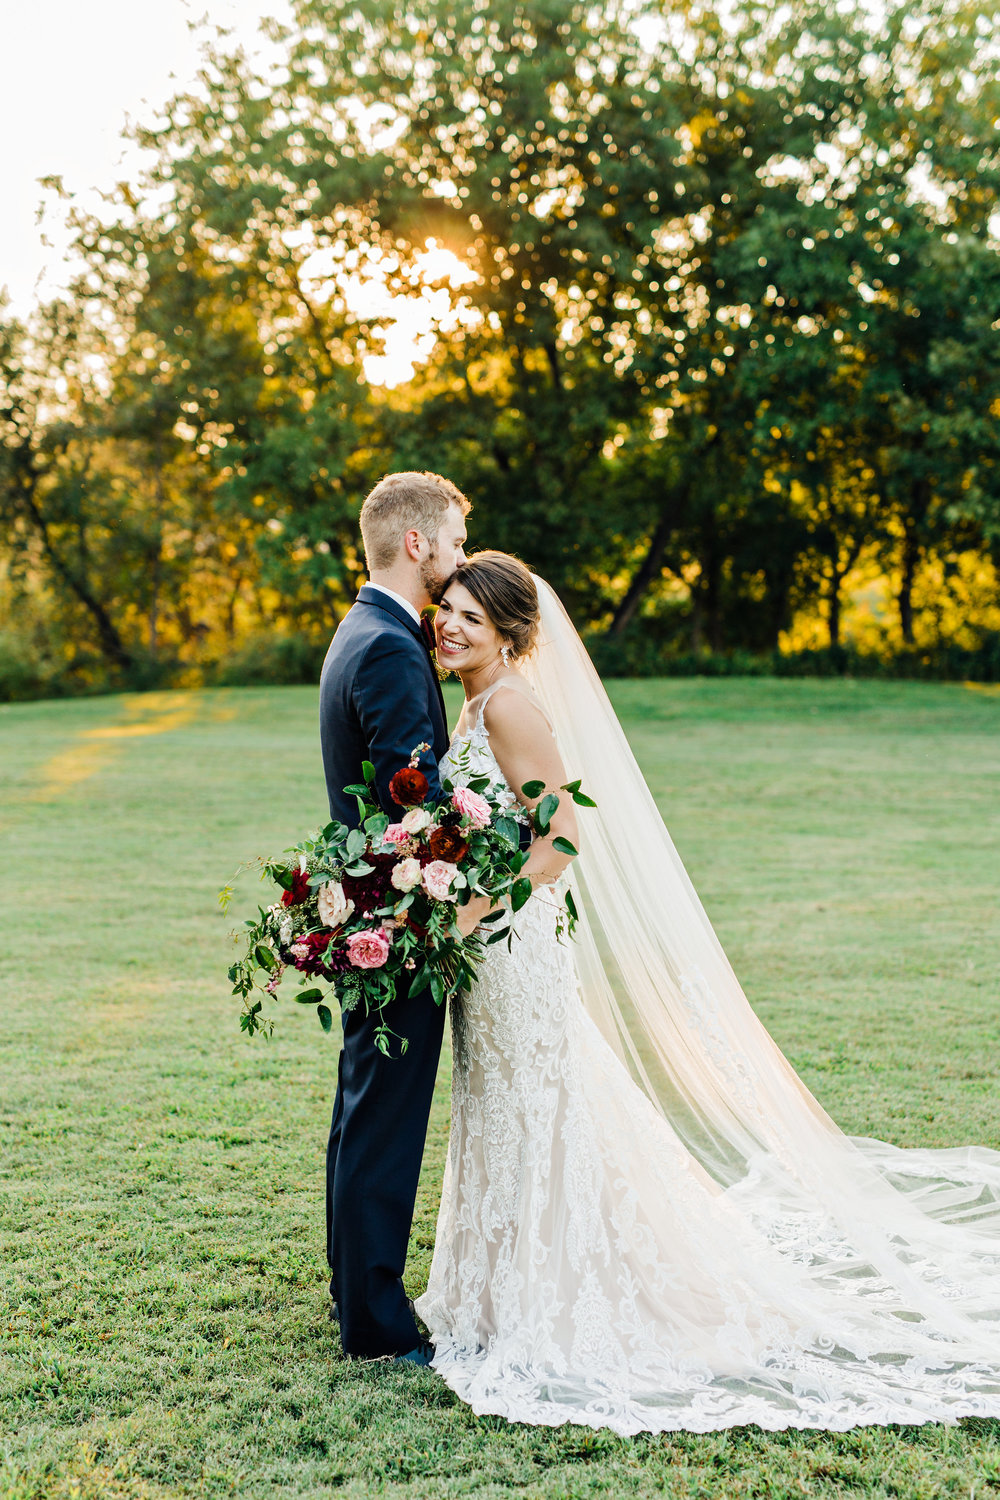 Sunset bride and groom portraits // Lush  marsala wedding florals